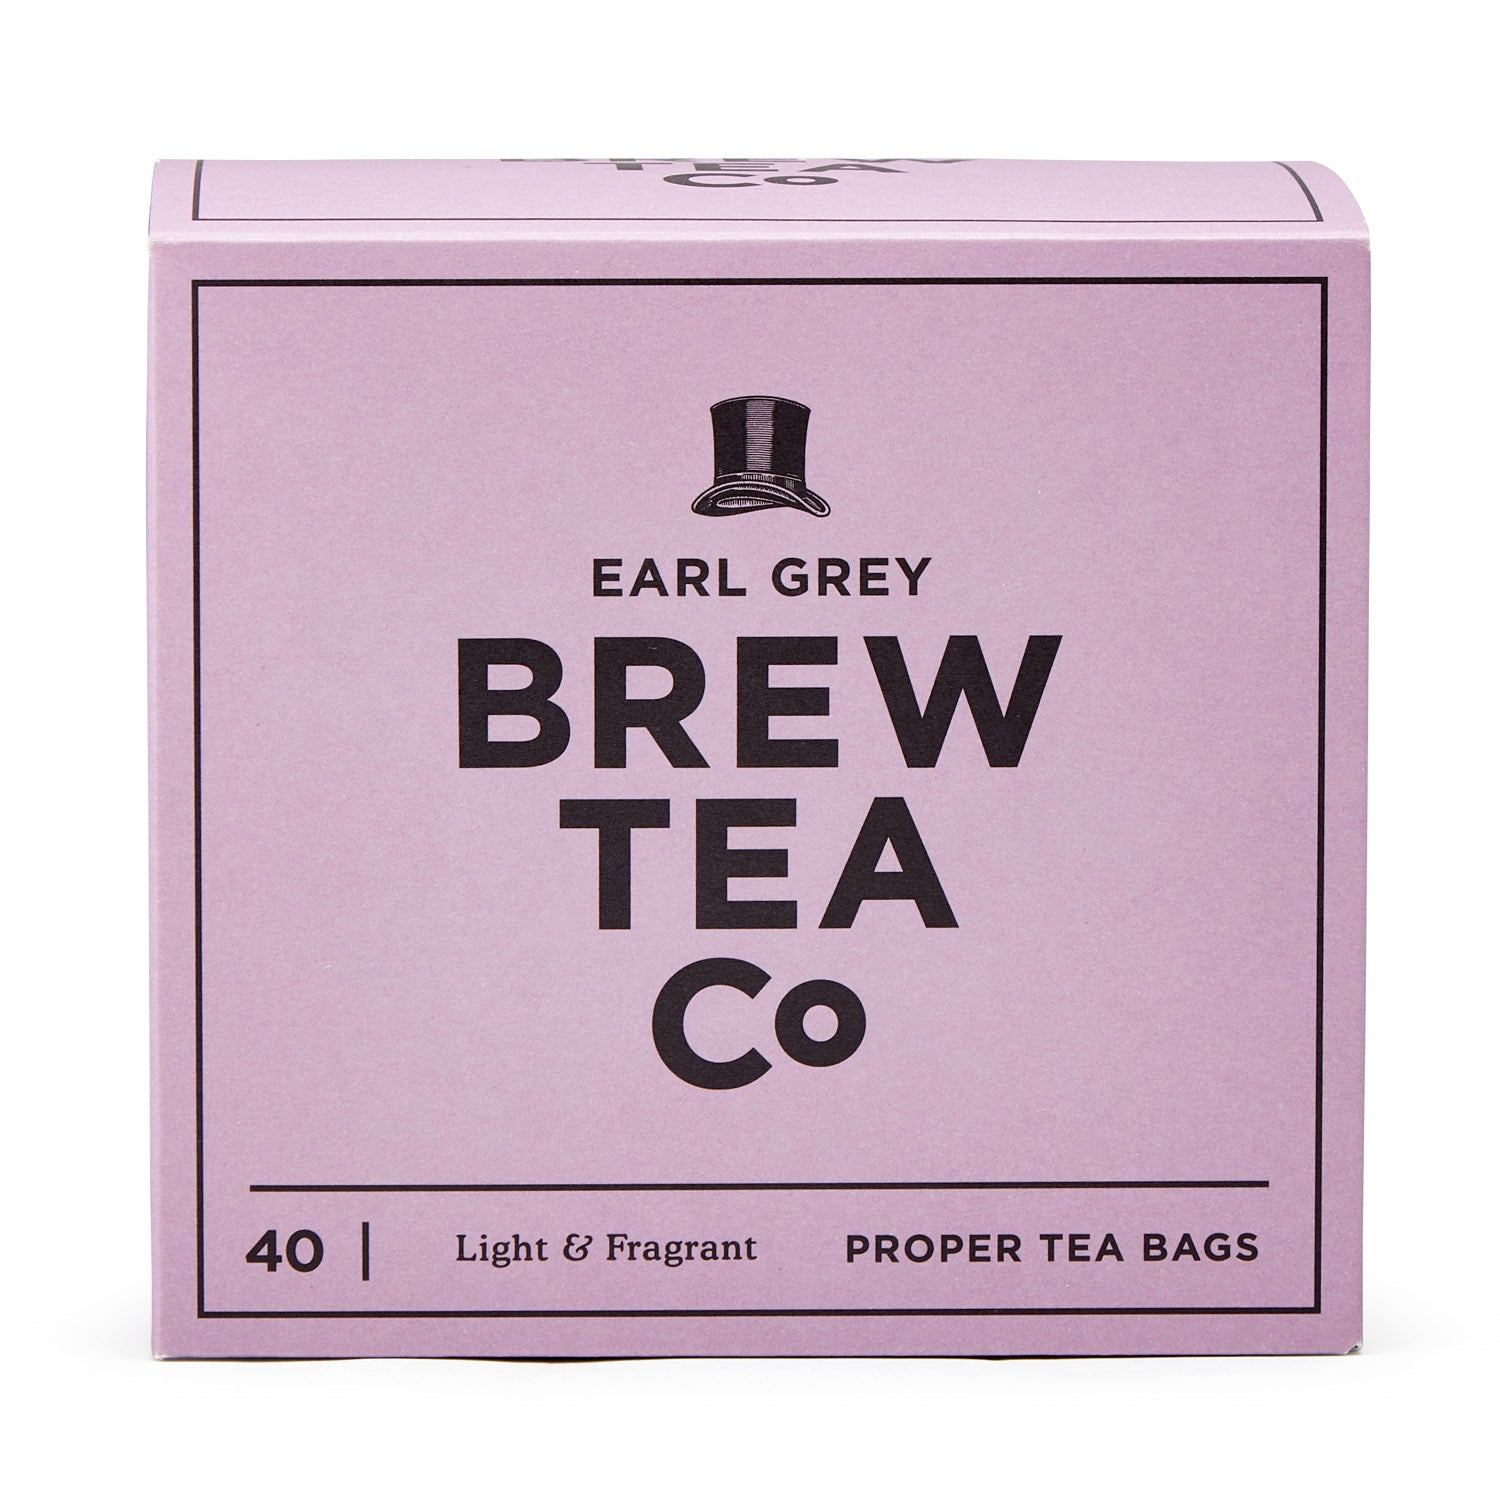 The 40s Tea Bag Triple Pack